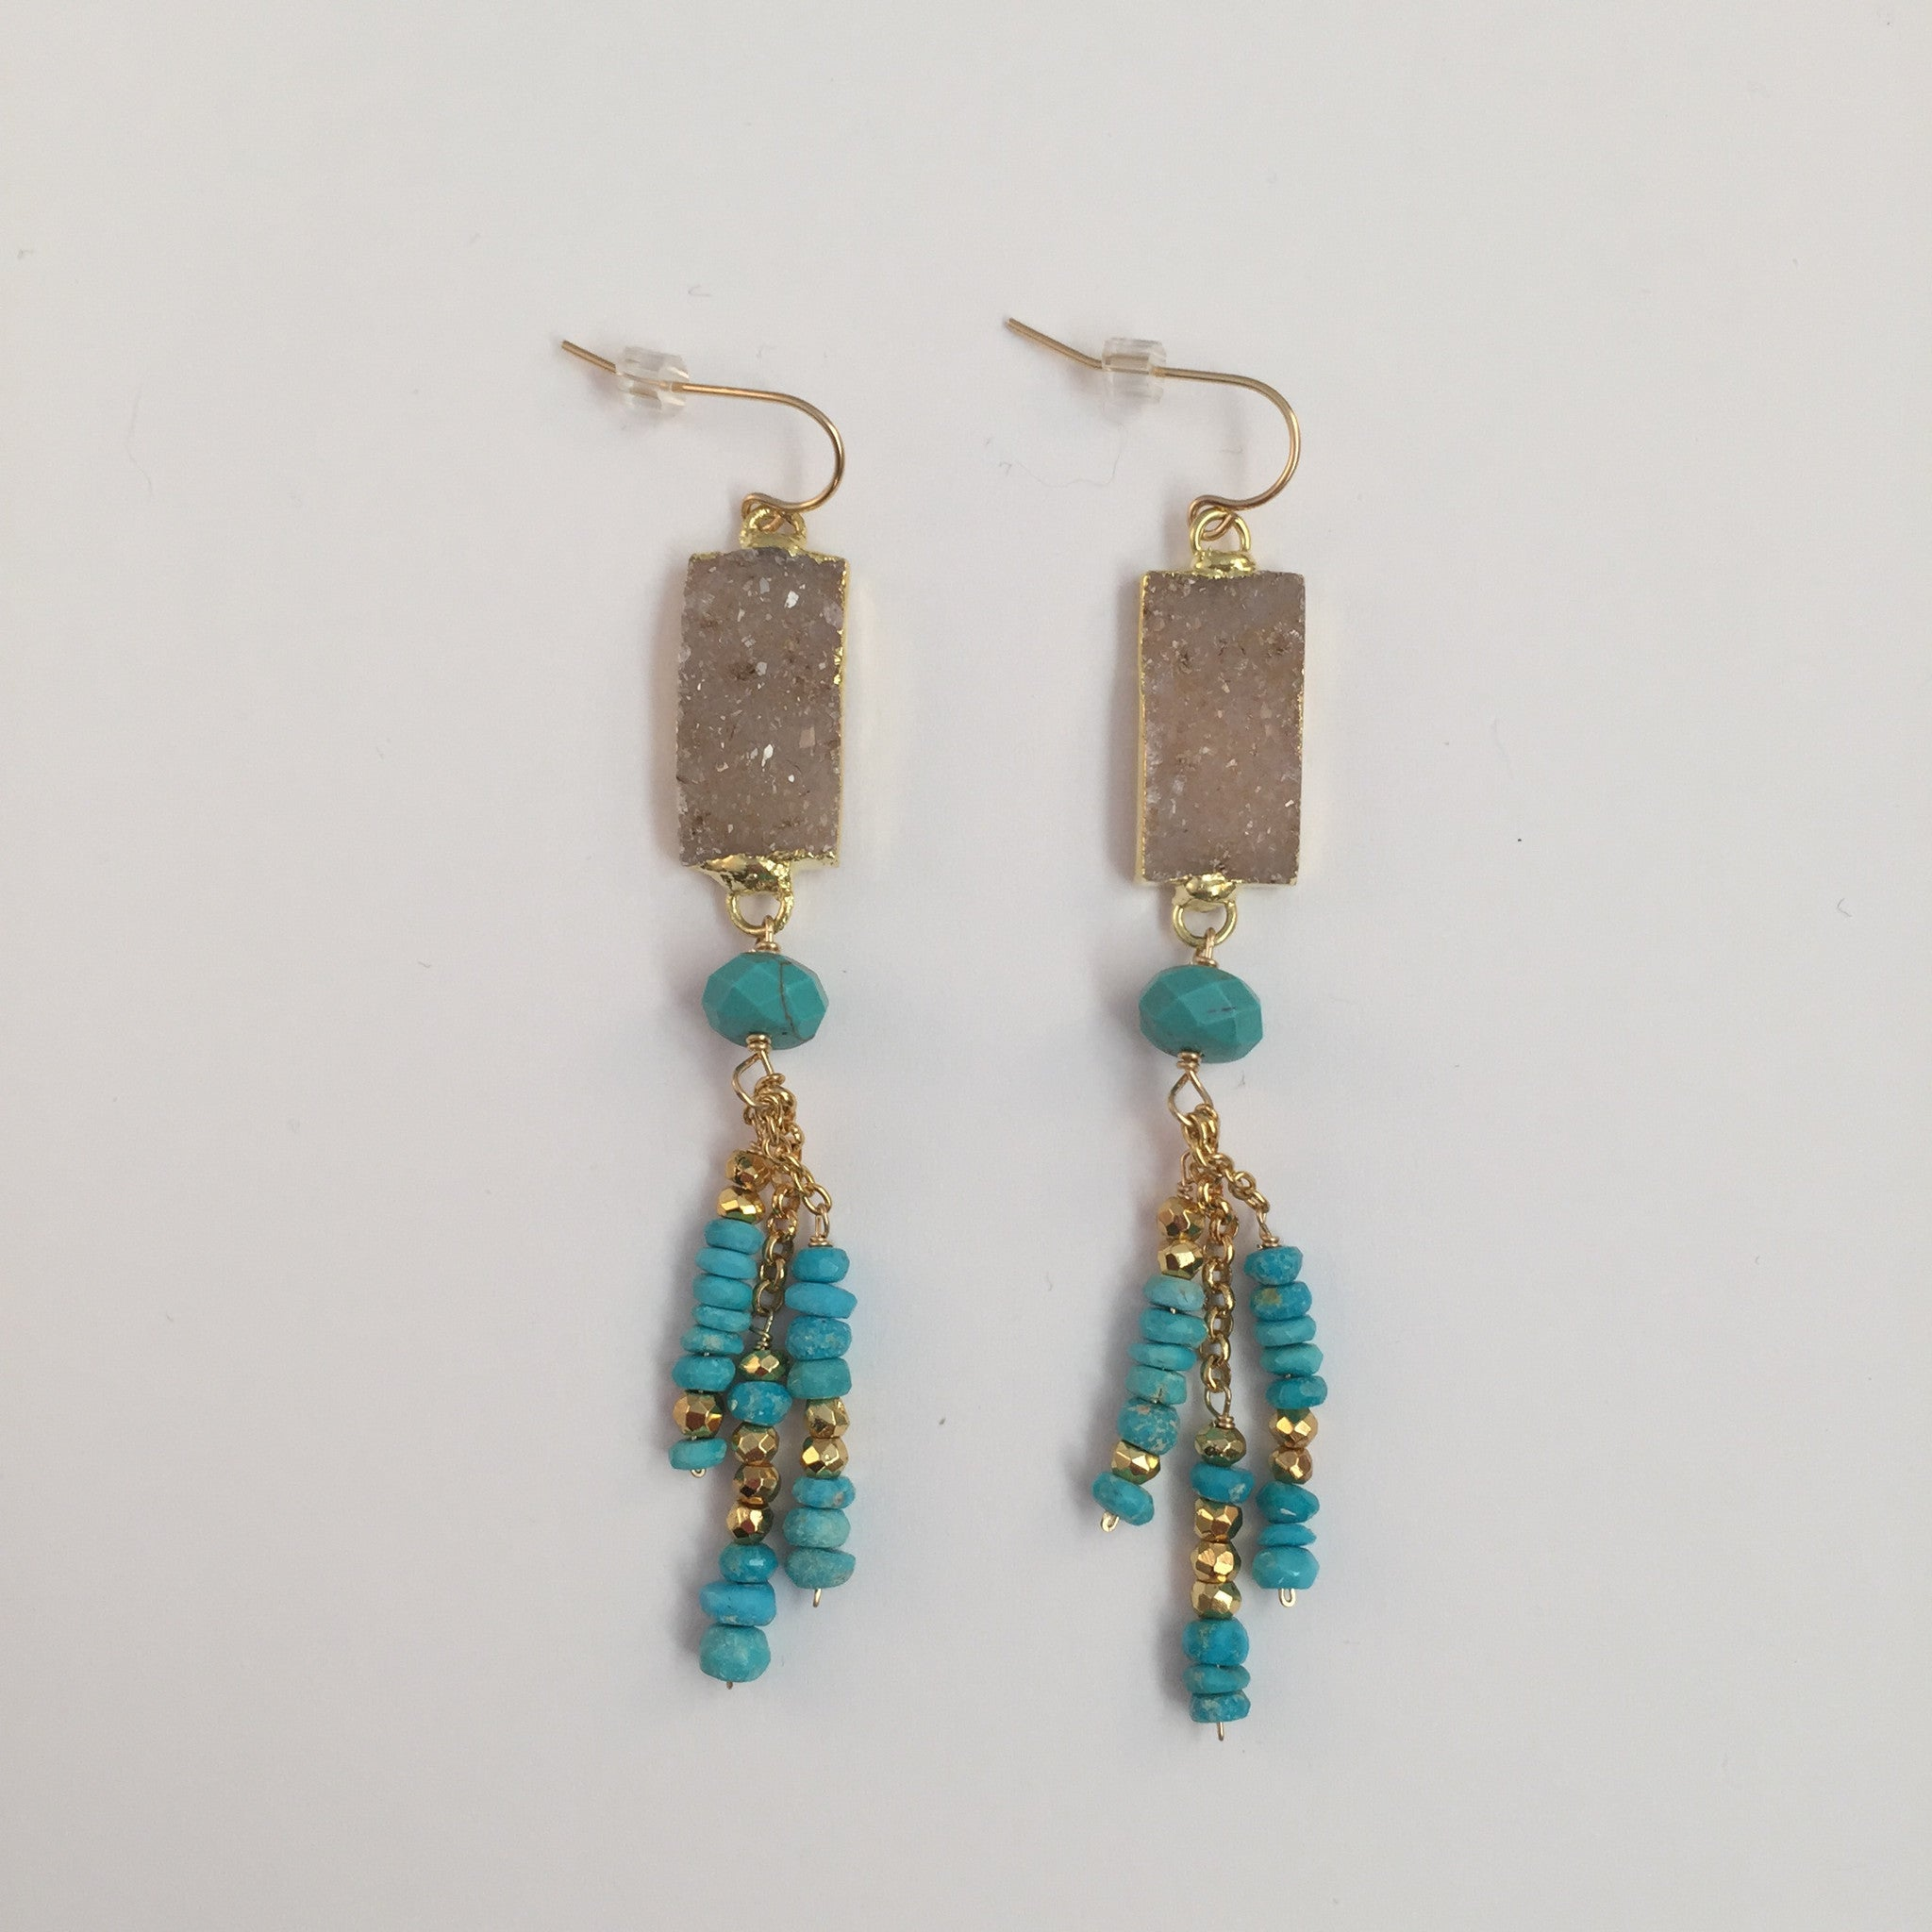 Druzy & Turquoise Earrings